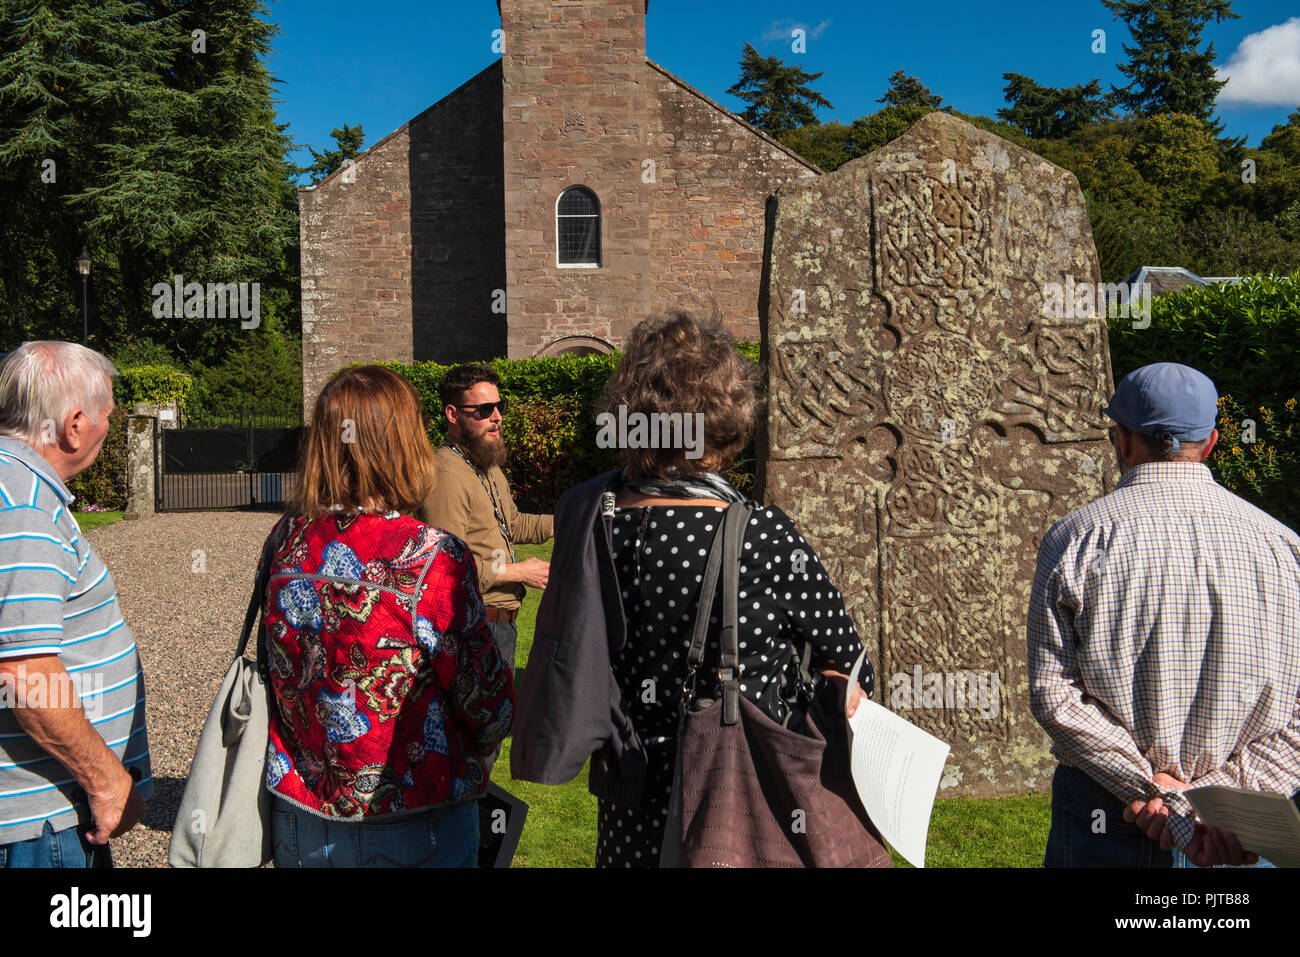 St Fergus Stock Photos & St Fergus Stock Images - Alamy